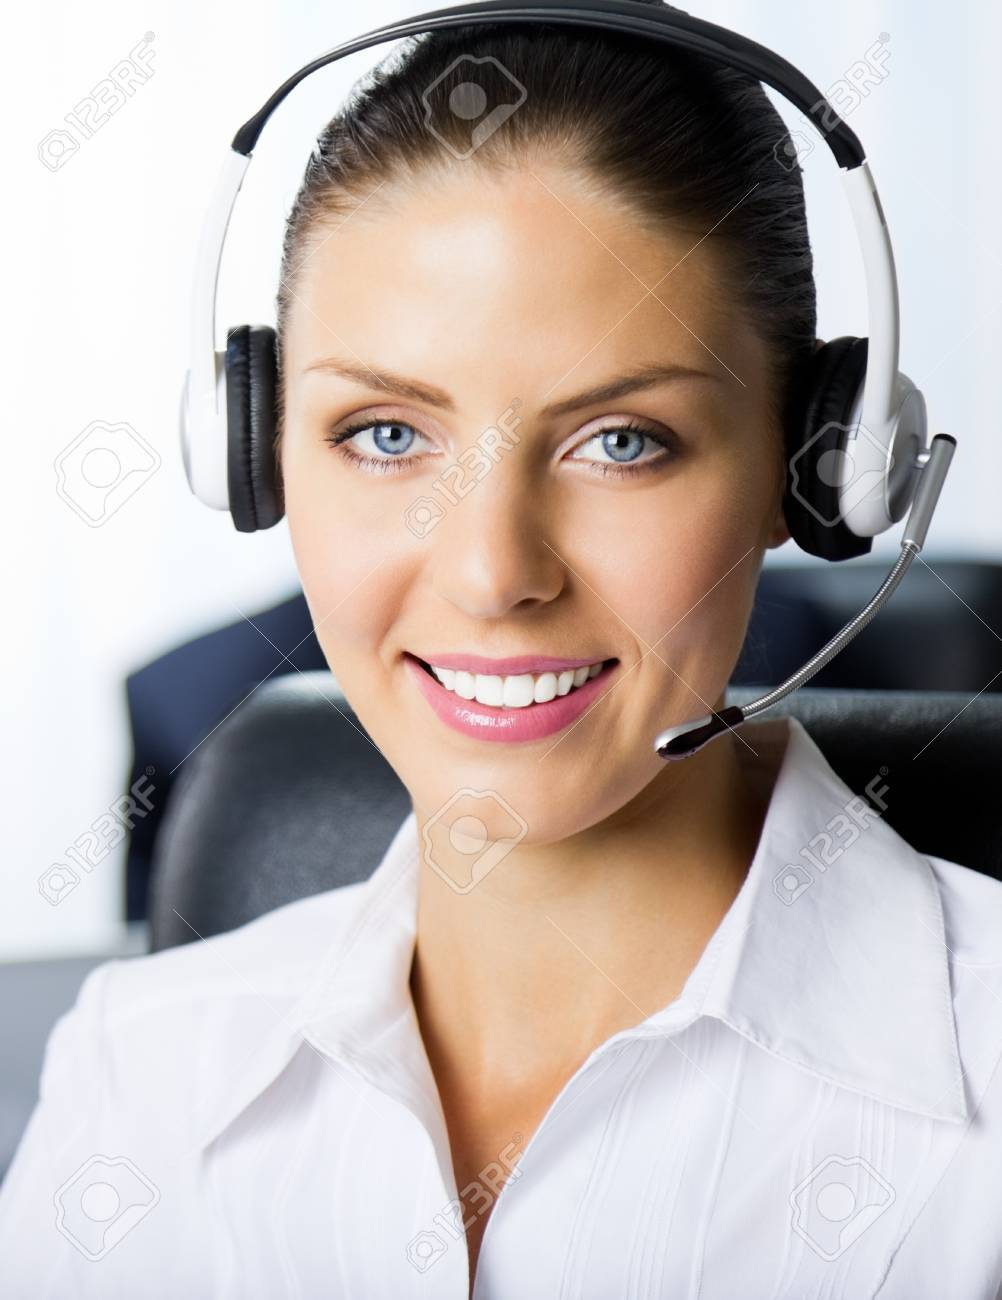 Portrait of female support phone operator at workplace Stock Photo - 15540624